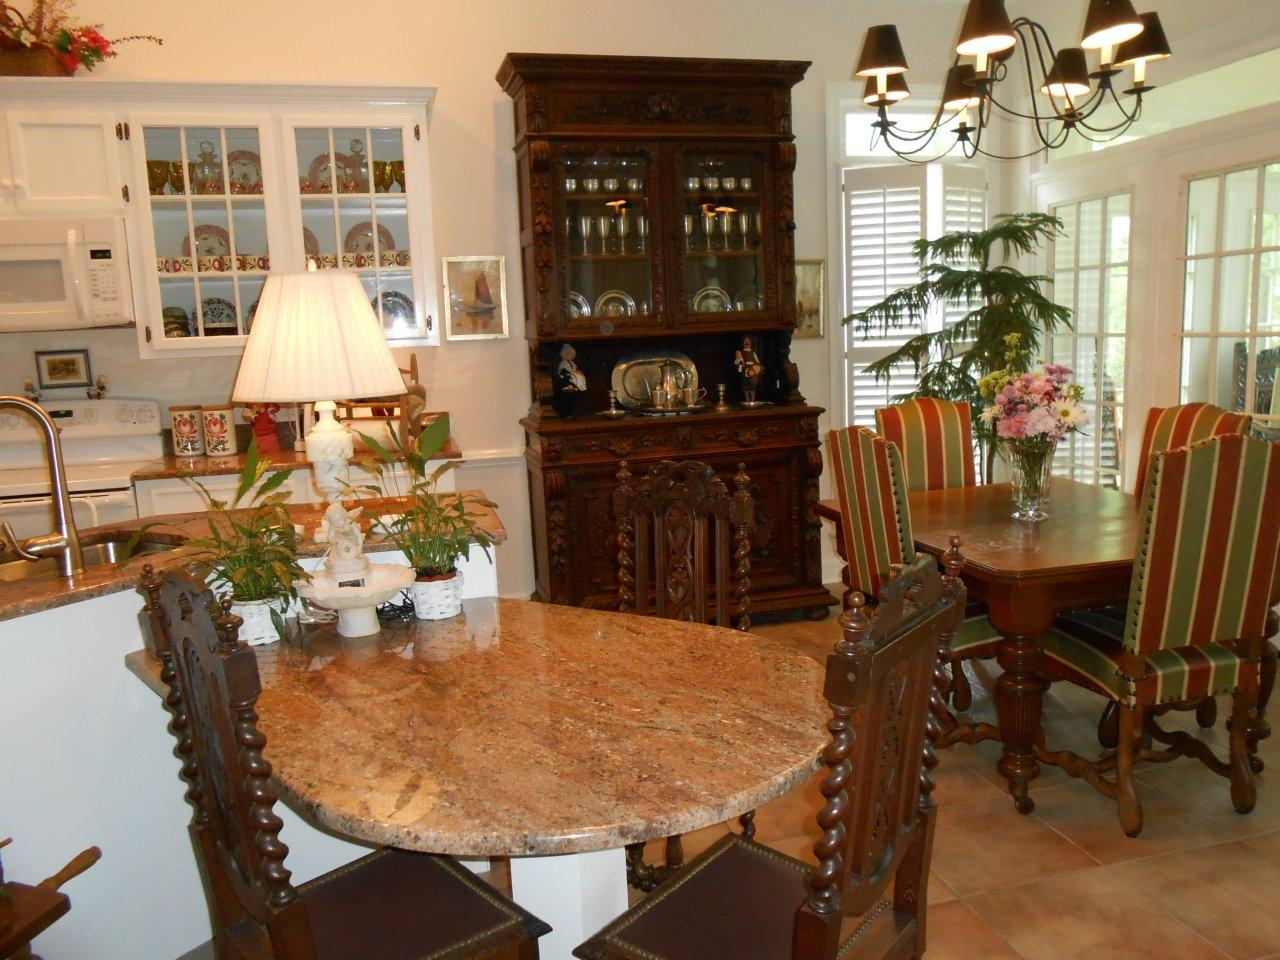 Antique French Hunting Chairs in our client's great room with a Hunting Buffet. EuroLuxAntiques.com